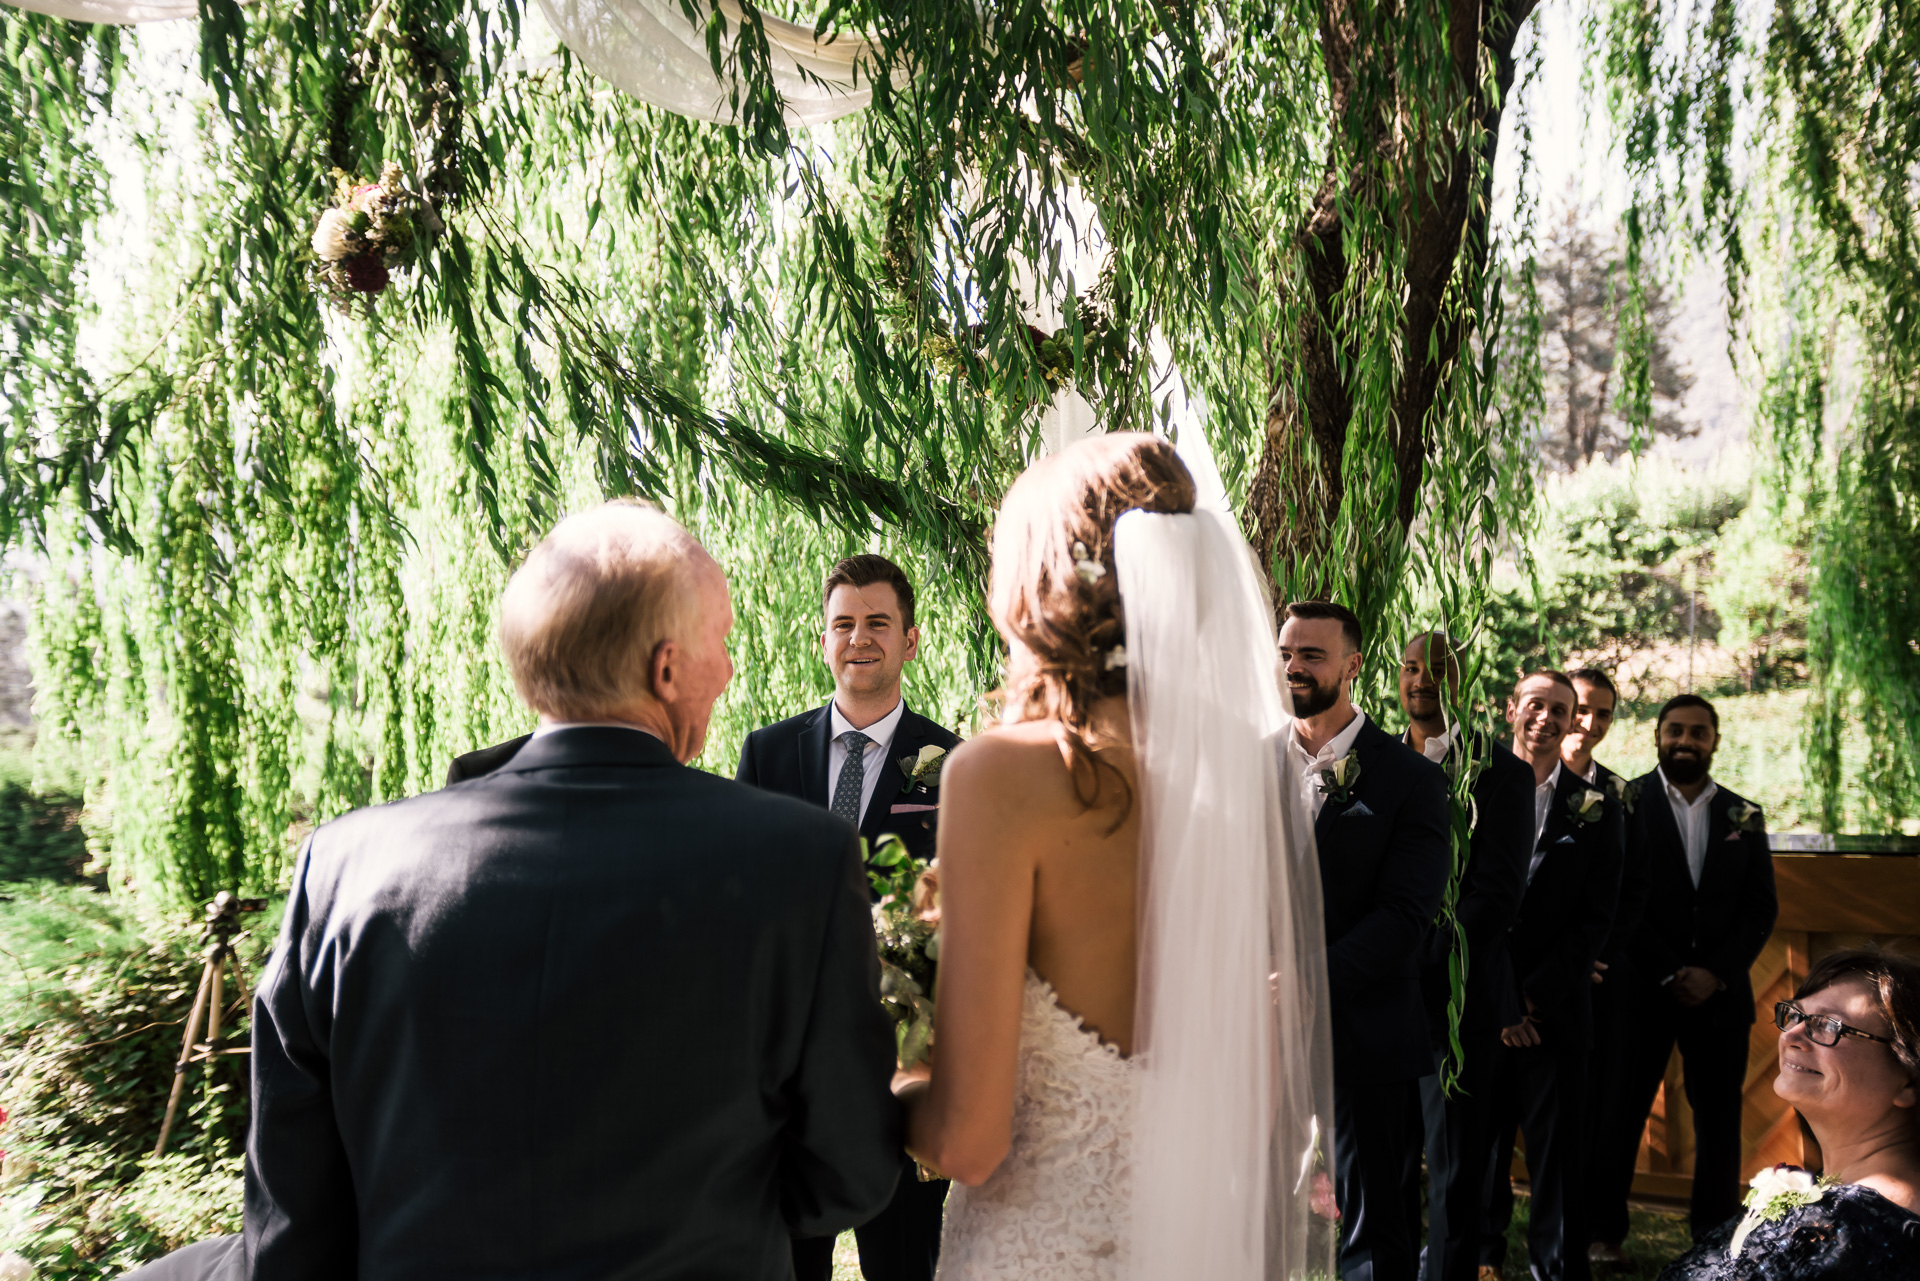 groom sees his bride coming down the aisle at the secret garden located at the Historic Parish ranch in Oak Glen California